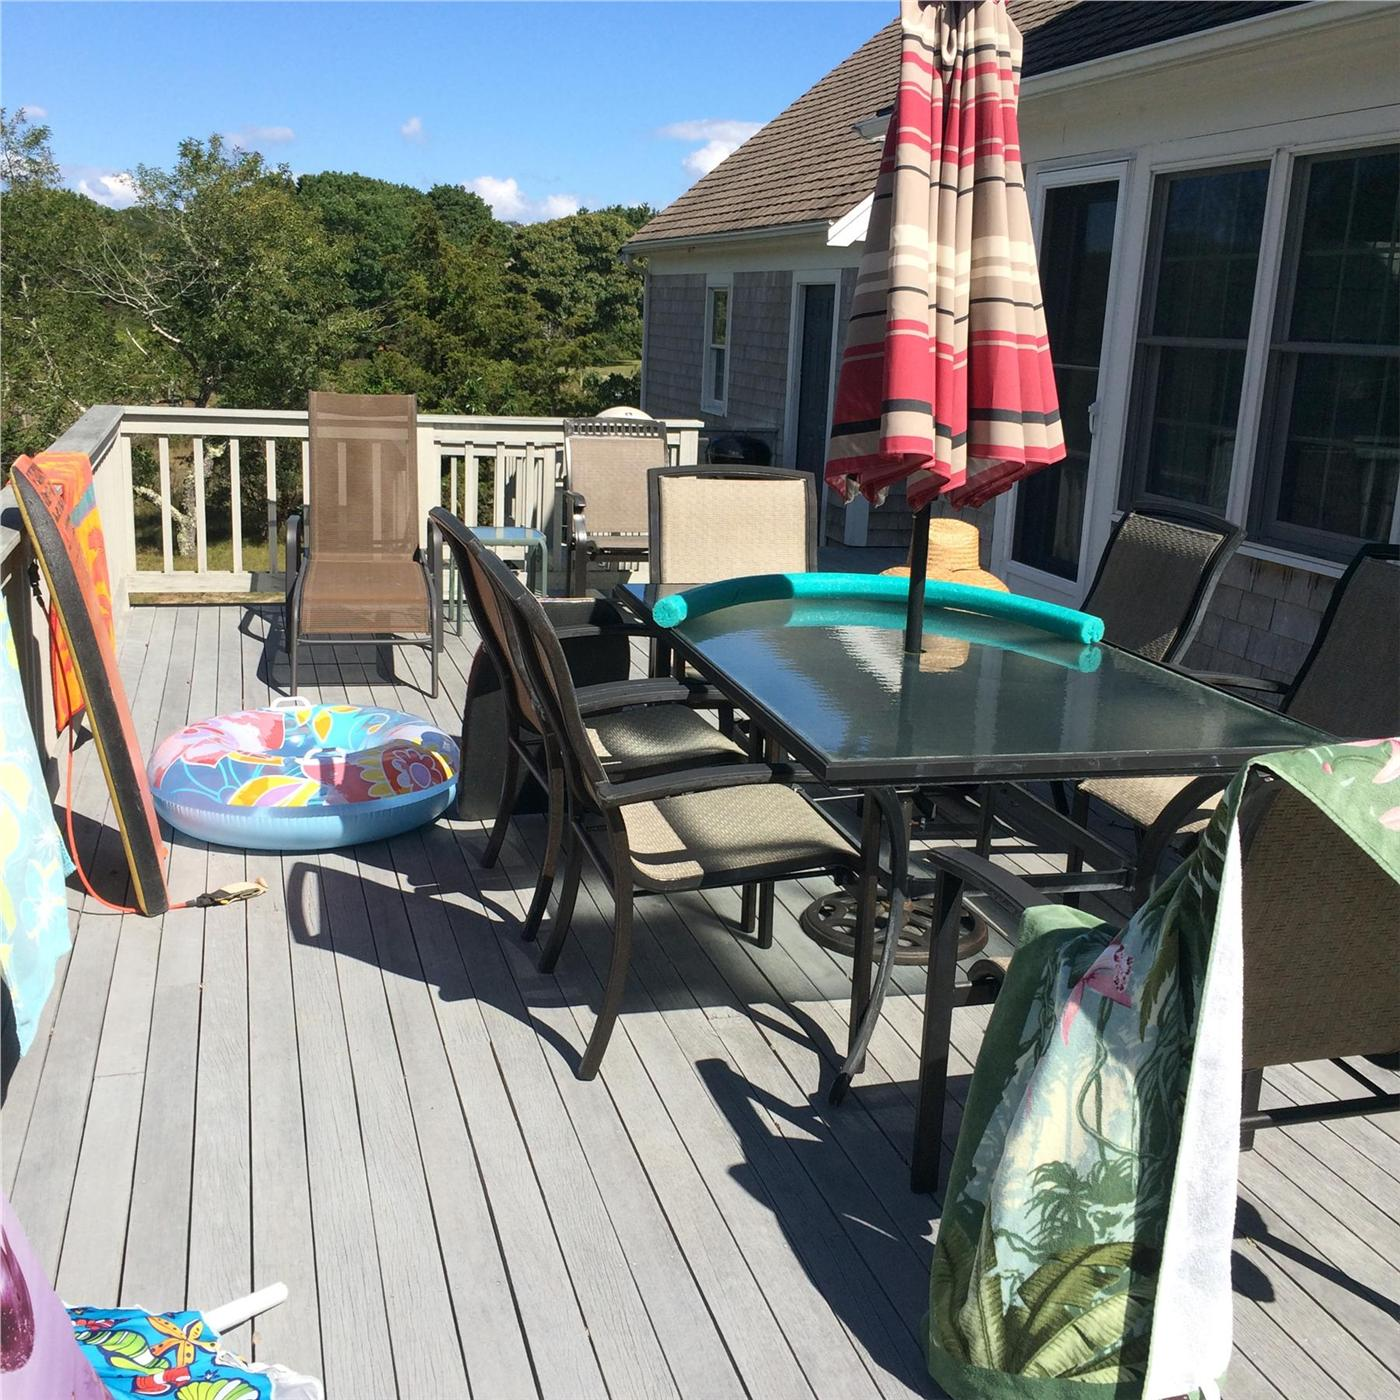 Eastham Vacation Rental Home In Cape Cod MA 02651